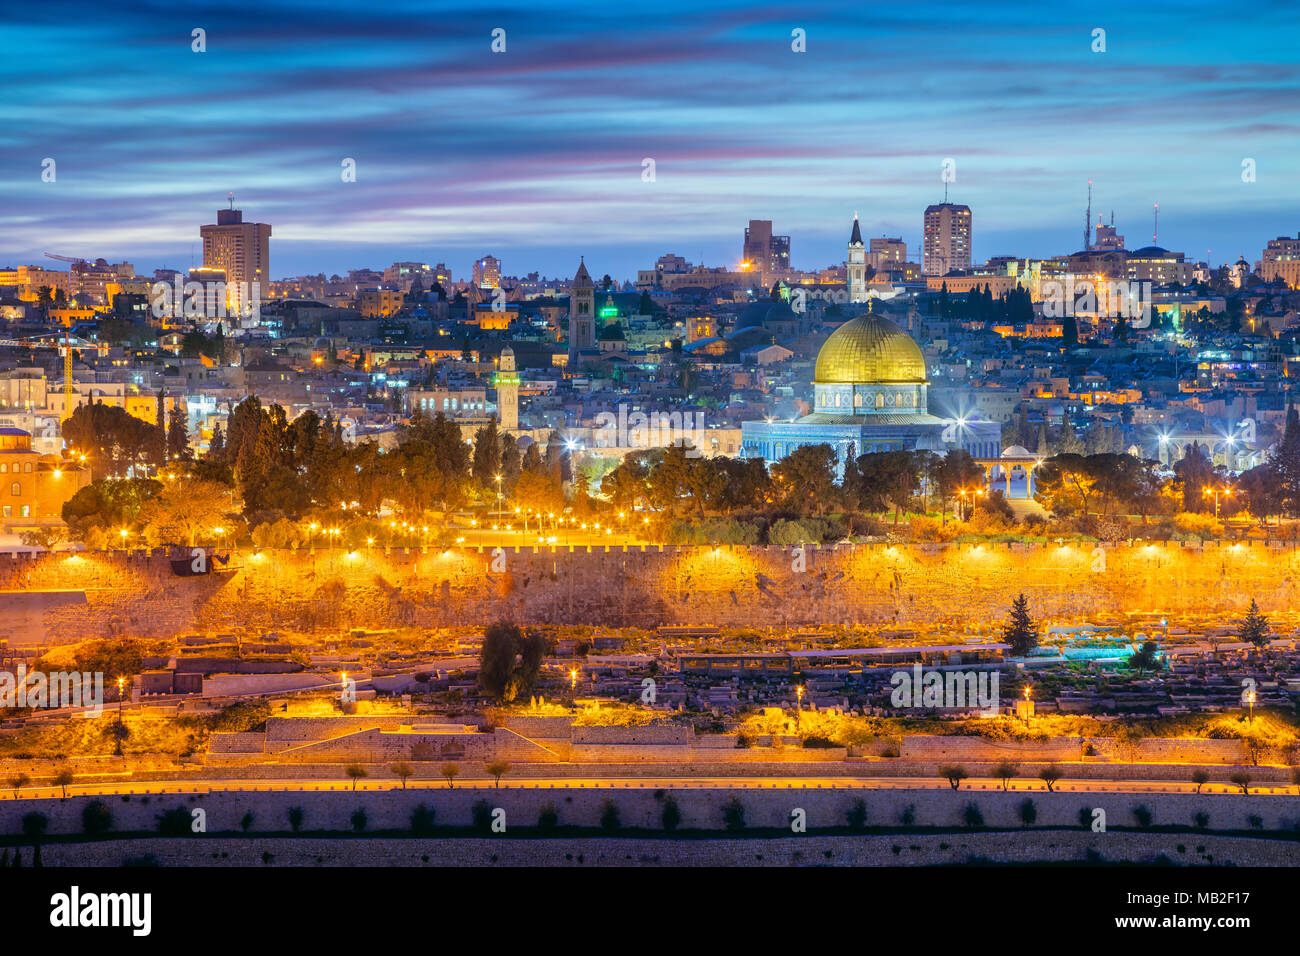 Old Town of Jerusalem. Cityscape image of Jerusalem, Israel with Dome of the Rock at sunset. - Stock Image